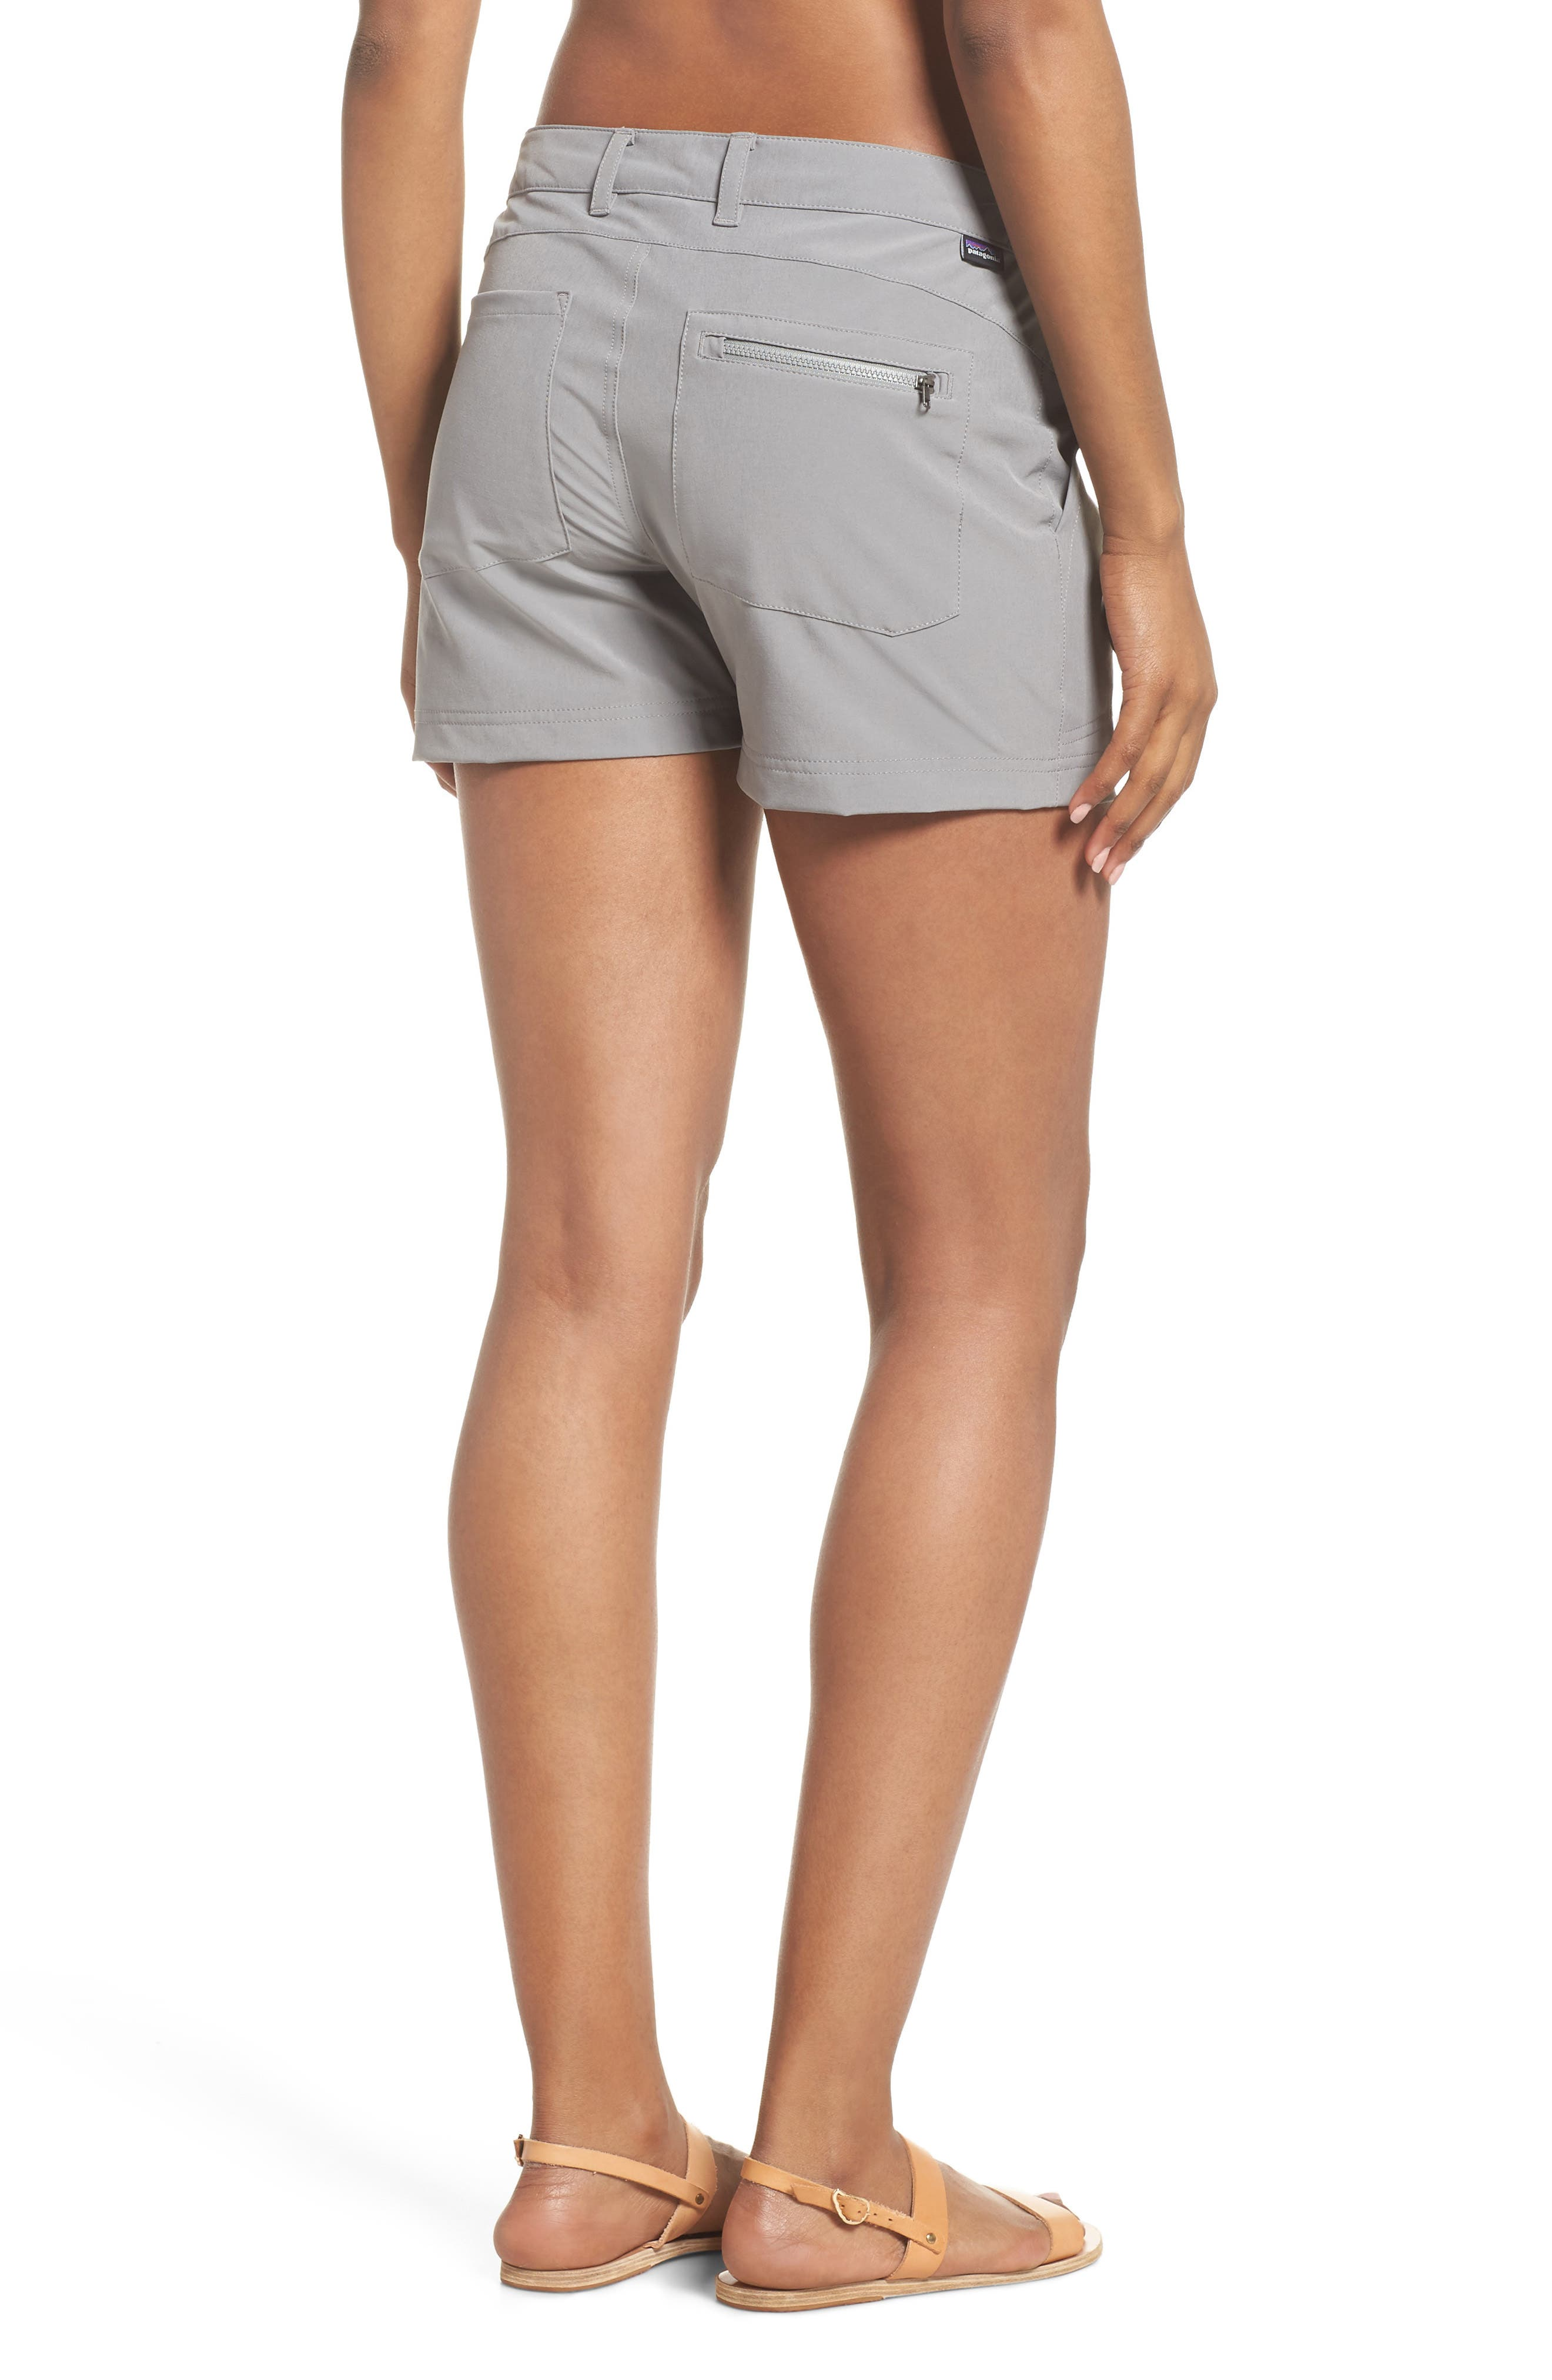 Happy Hike Shorts,                             Alternate thumbnail 2, color,                             Feather Grey